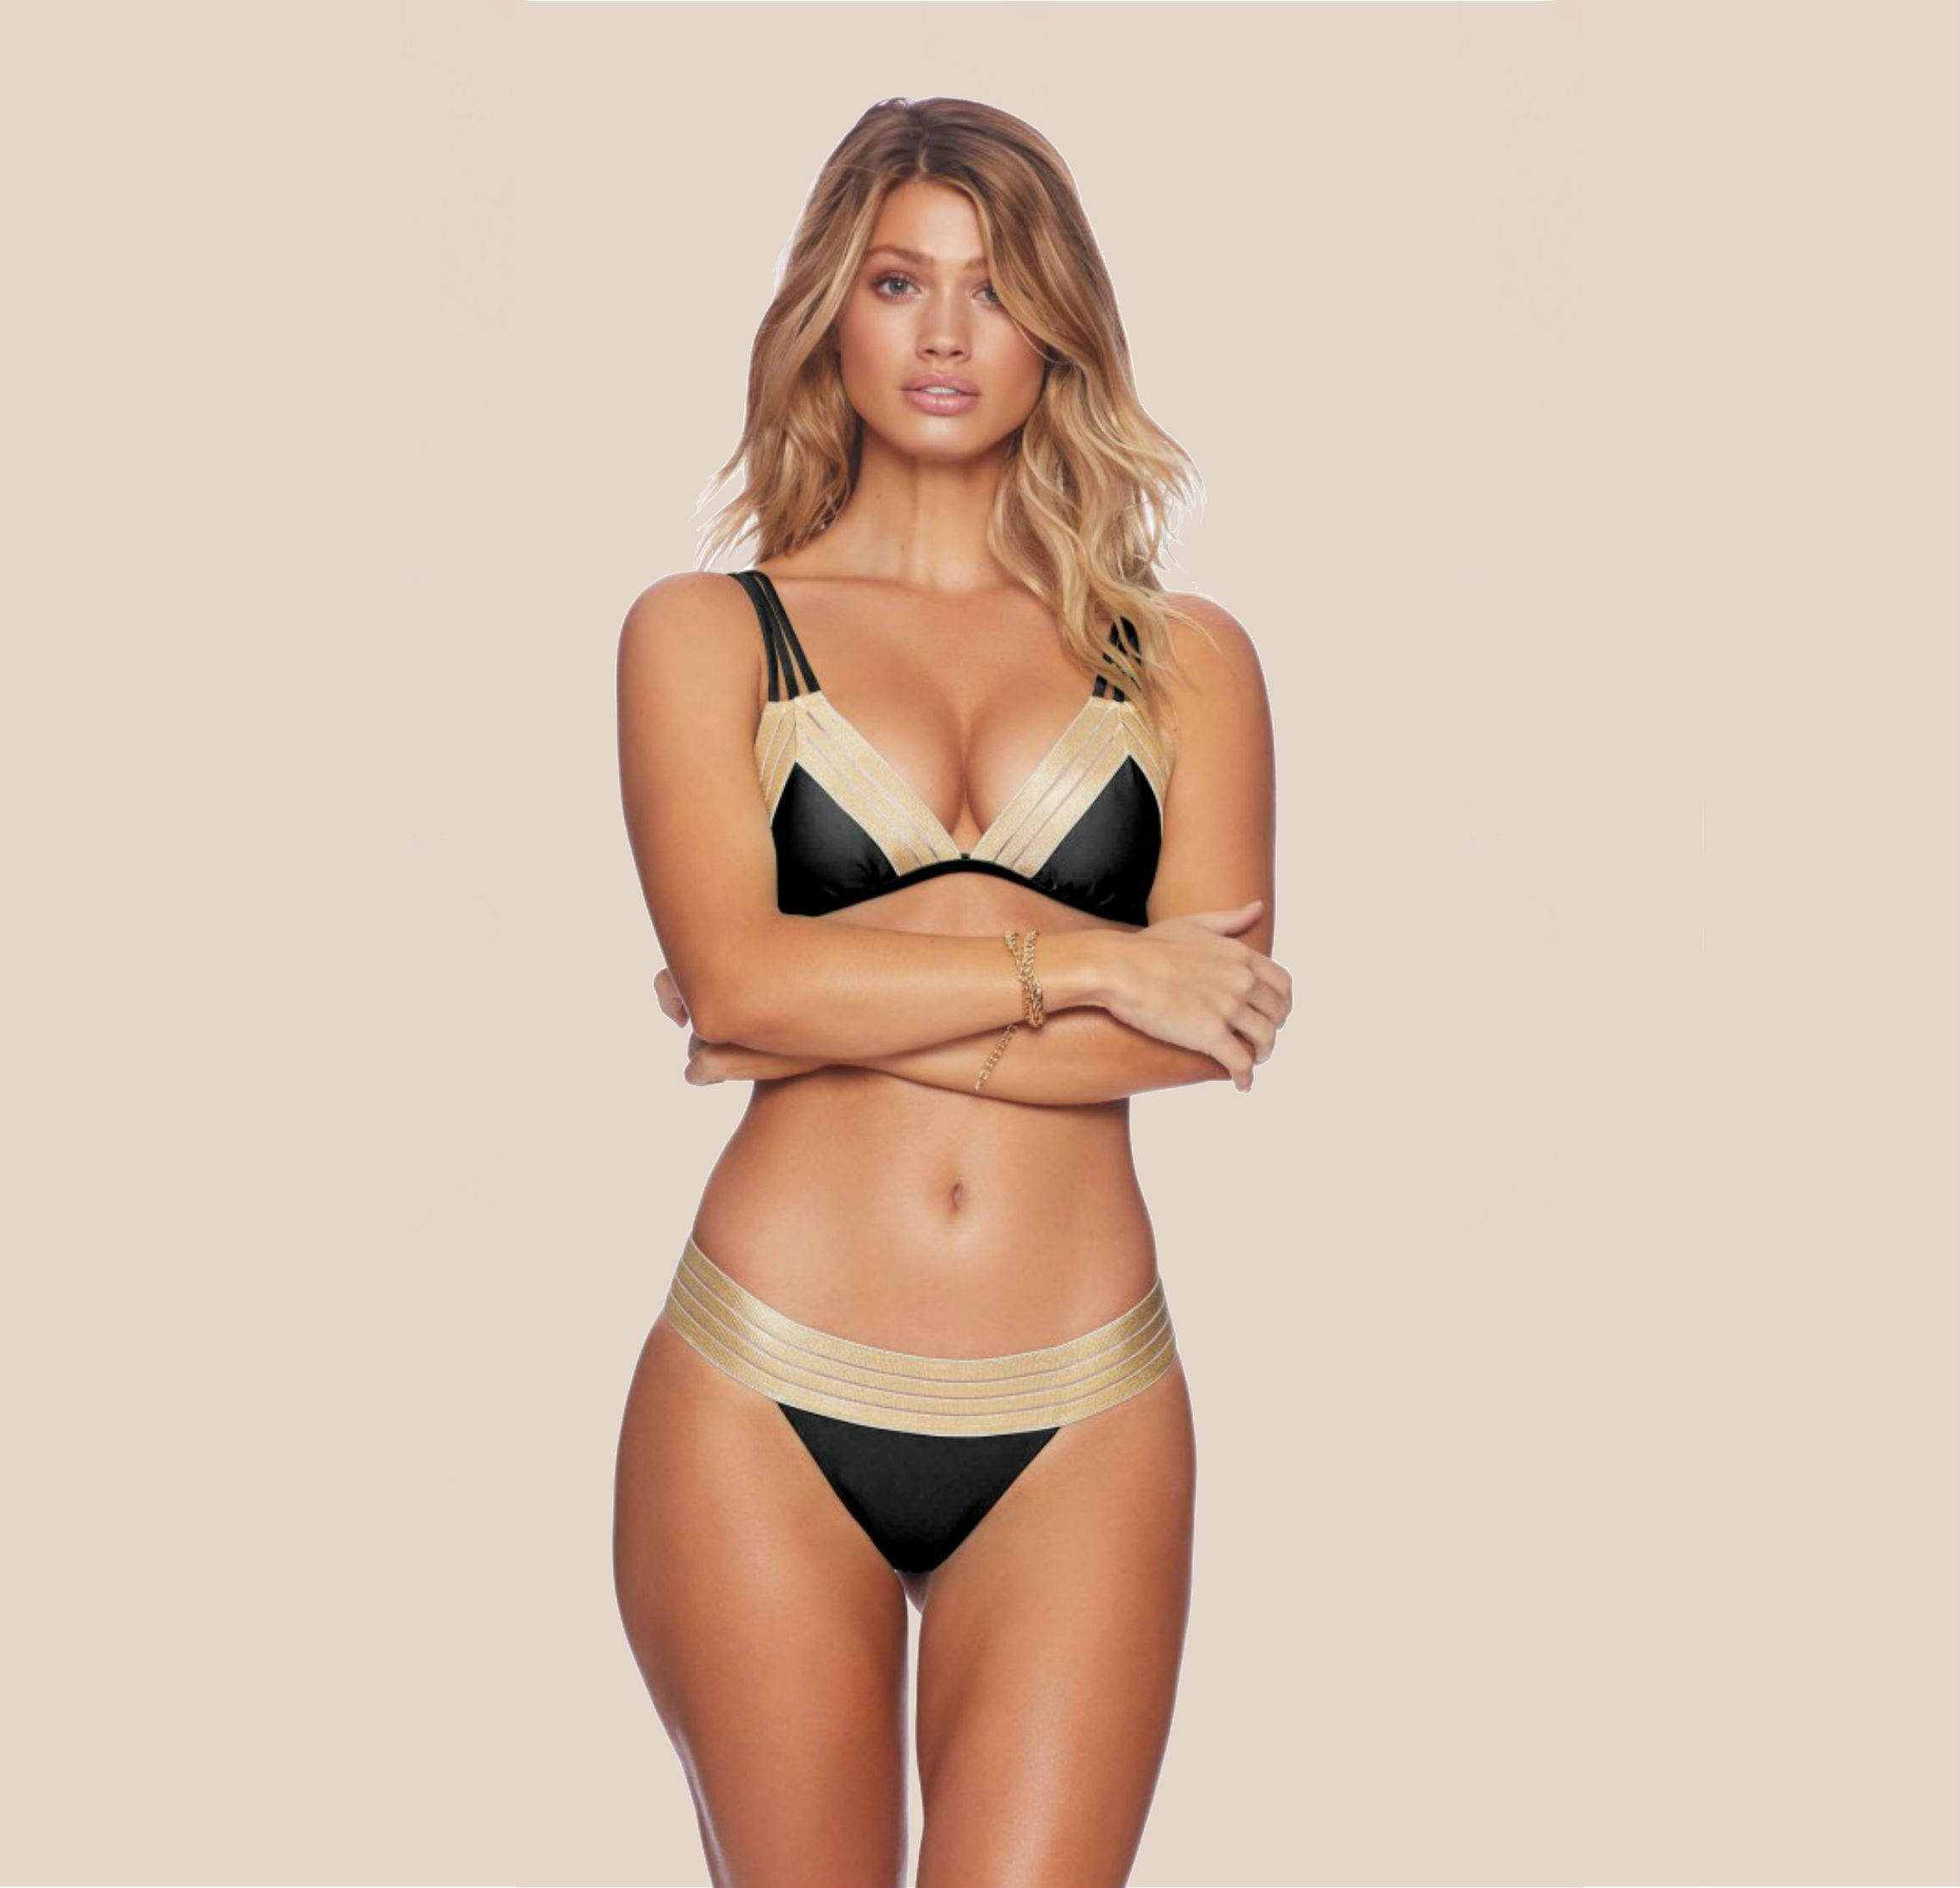 Beach Bunny Sheer Addiction Black and Gold Bikini Top + Bottom